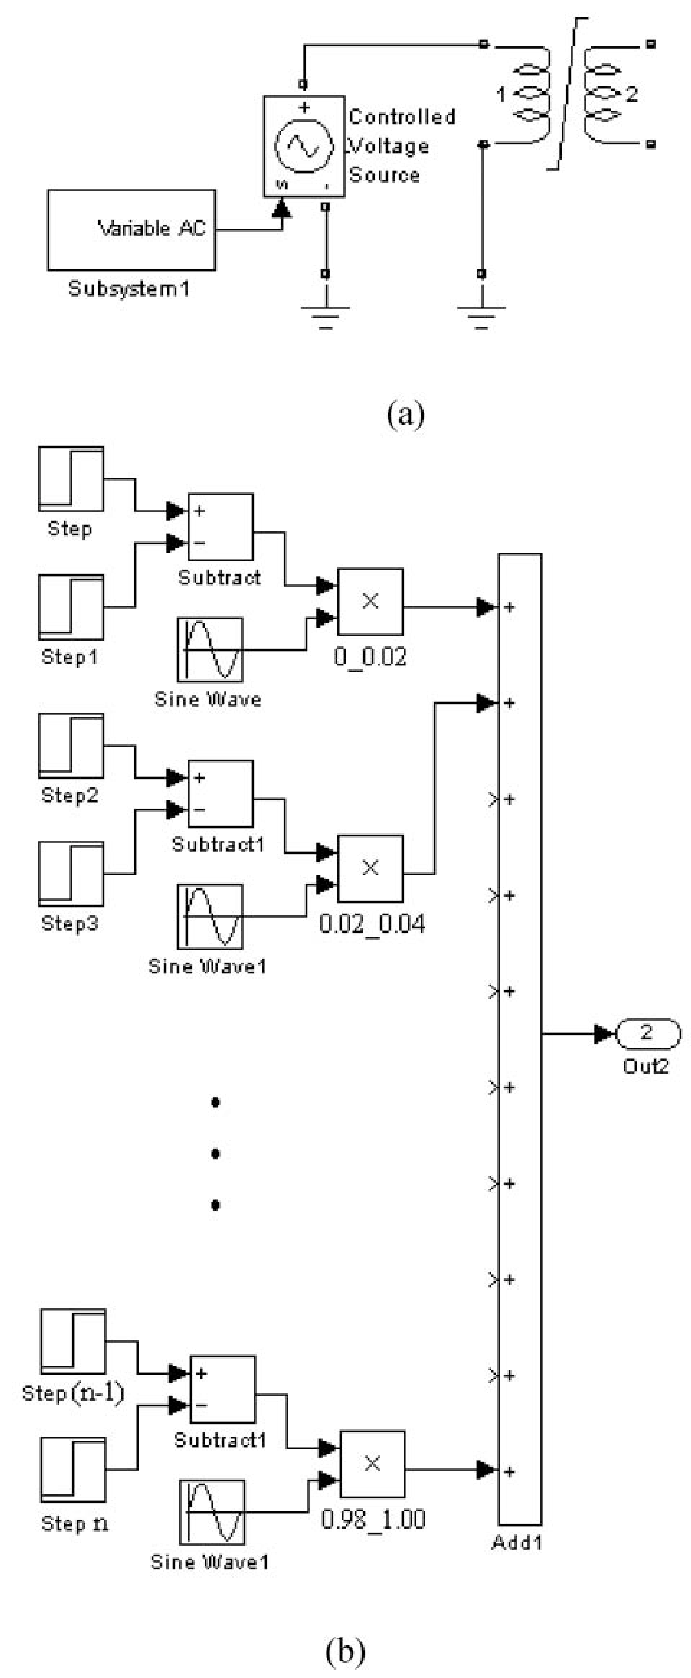 medium resolution of  a variable ac voltage source providing input to the transformer model and